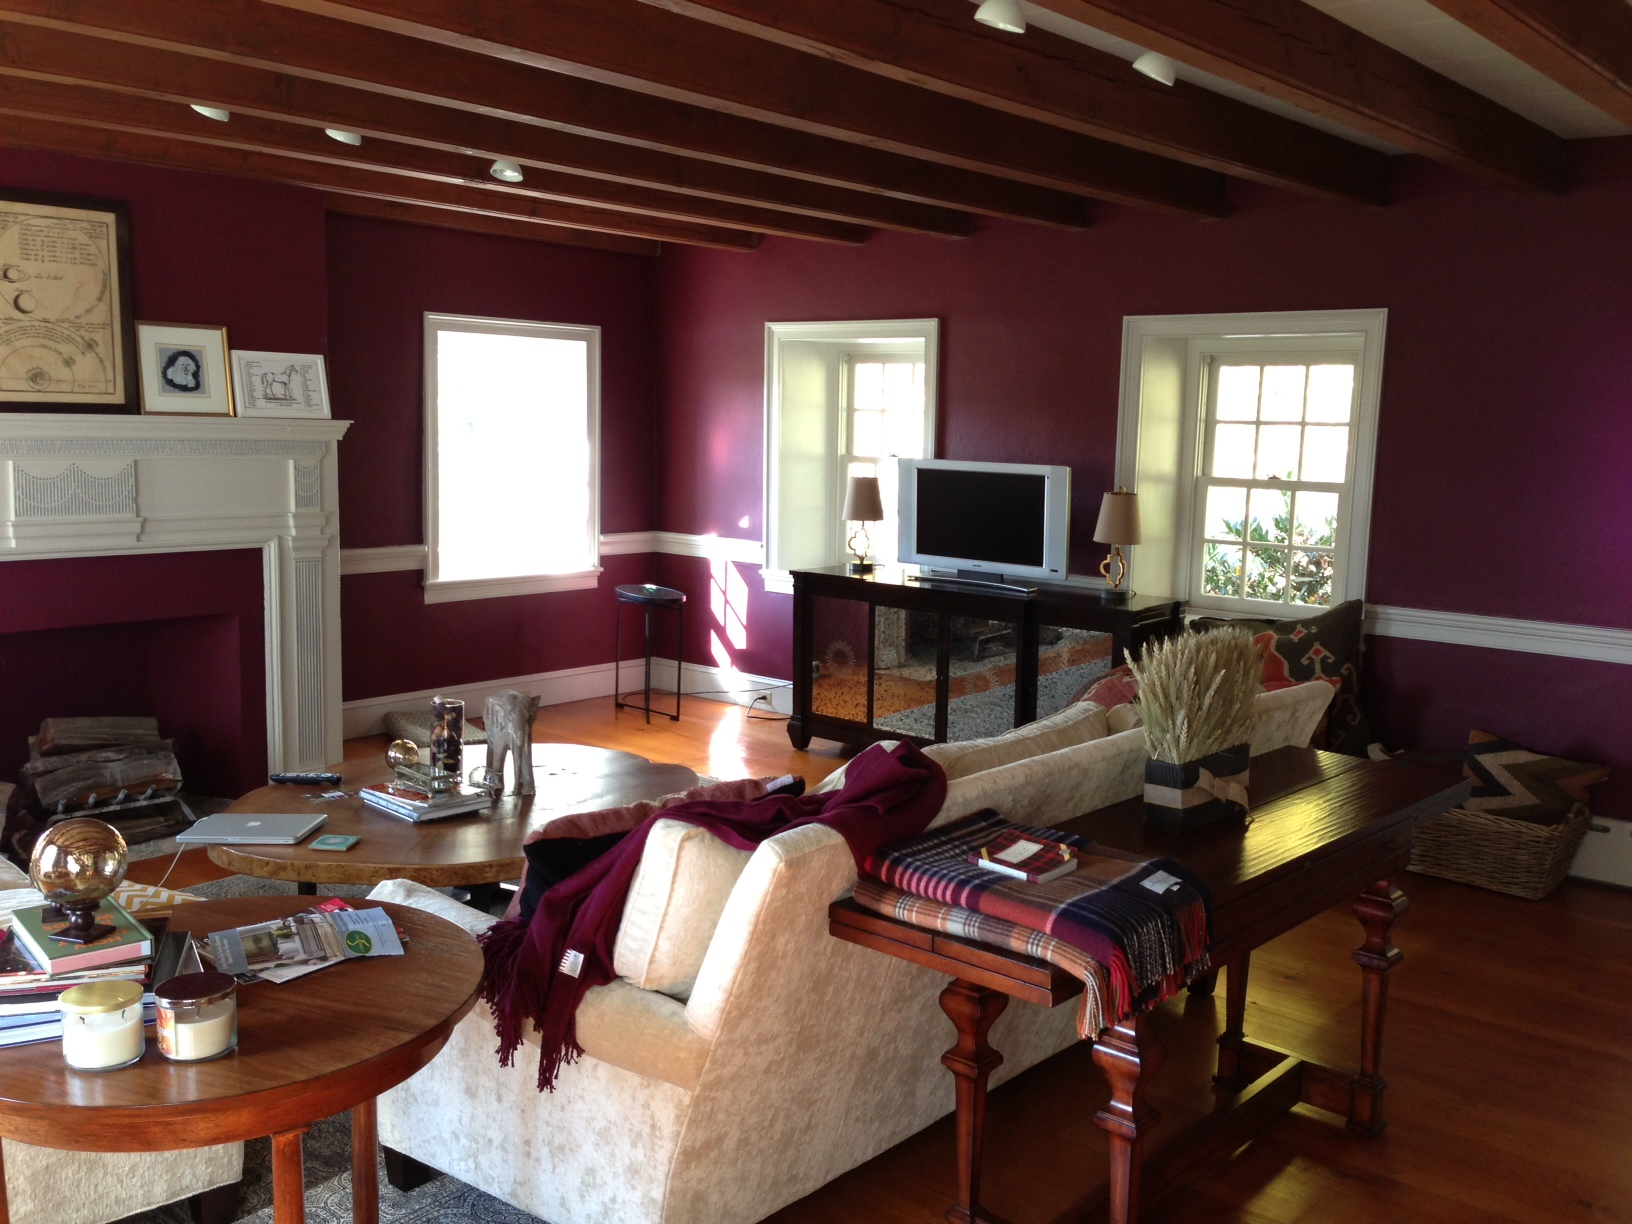 Interior Painting in West Chester, PA